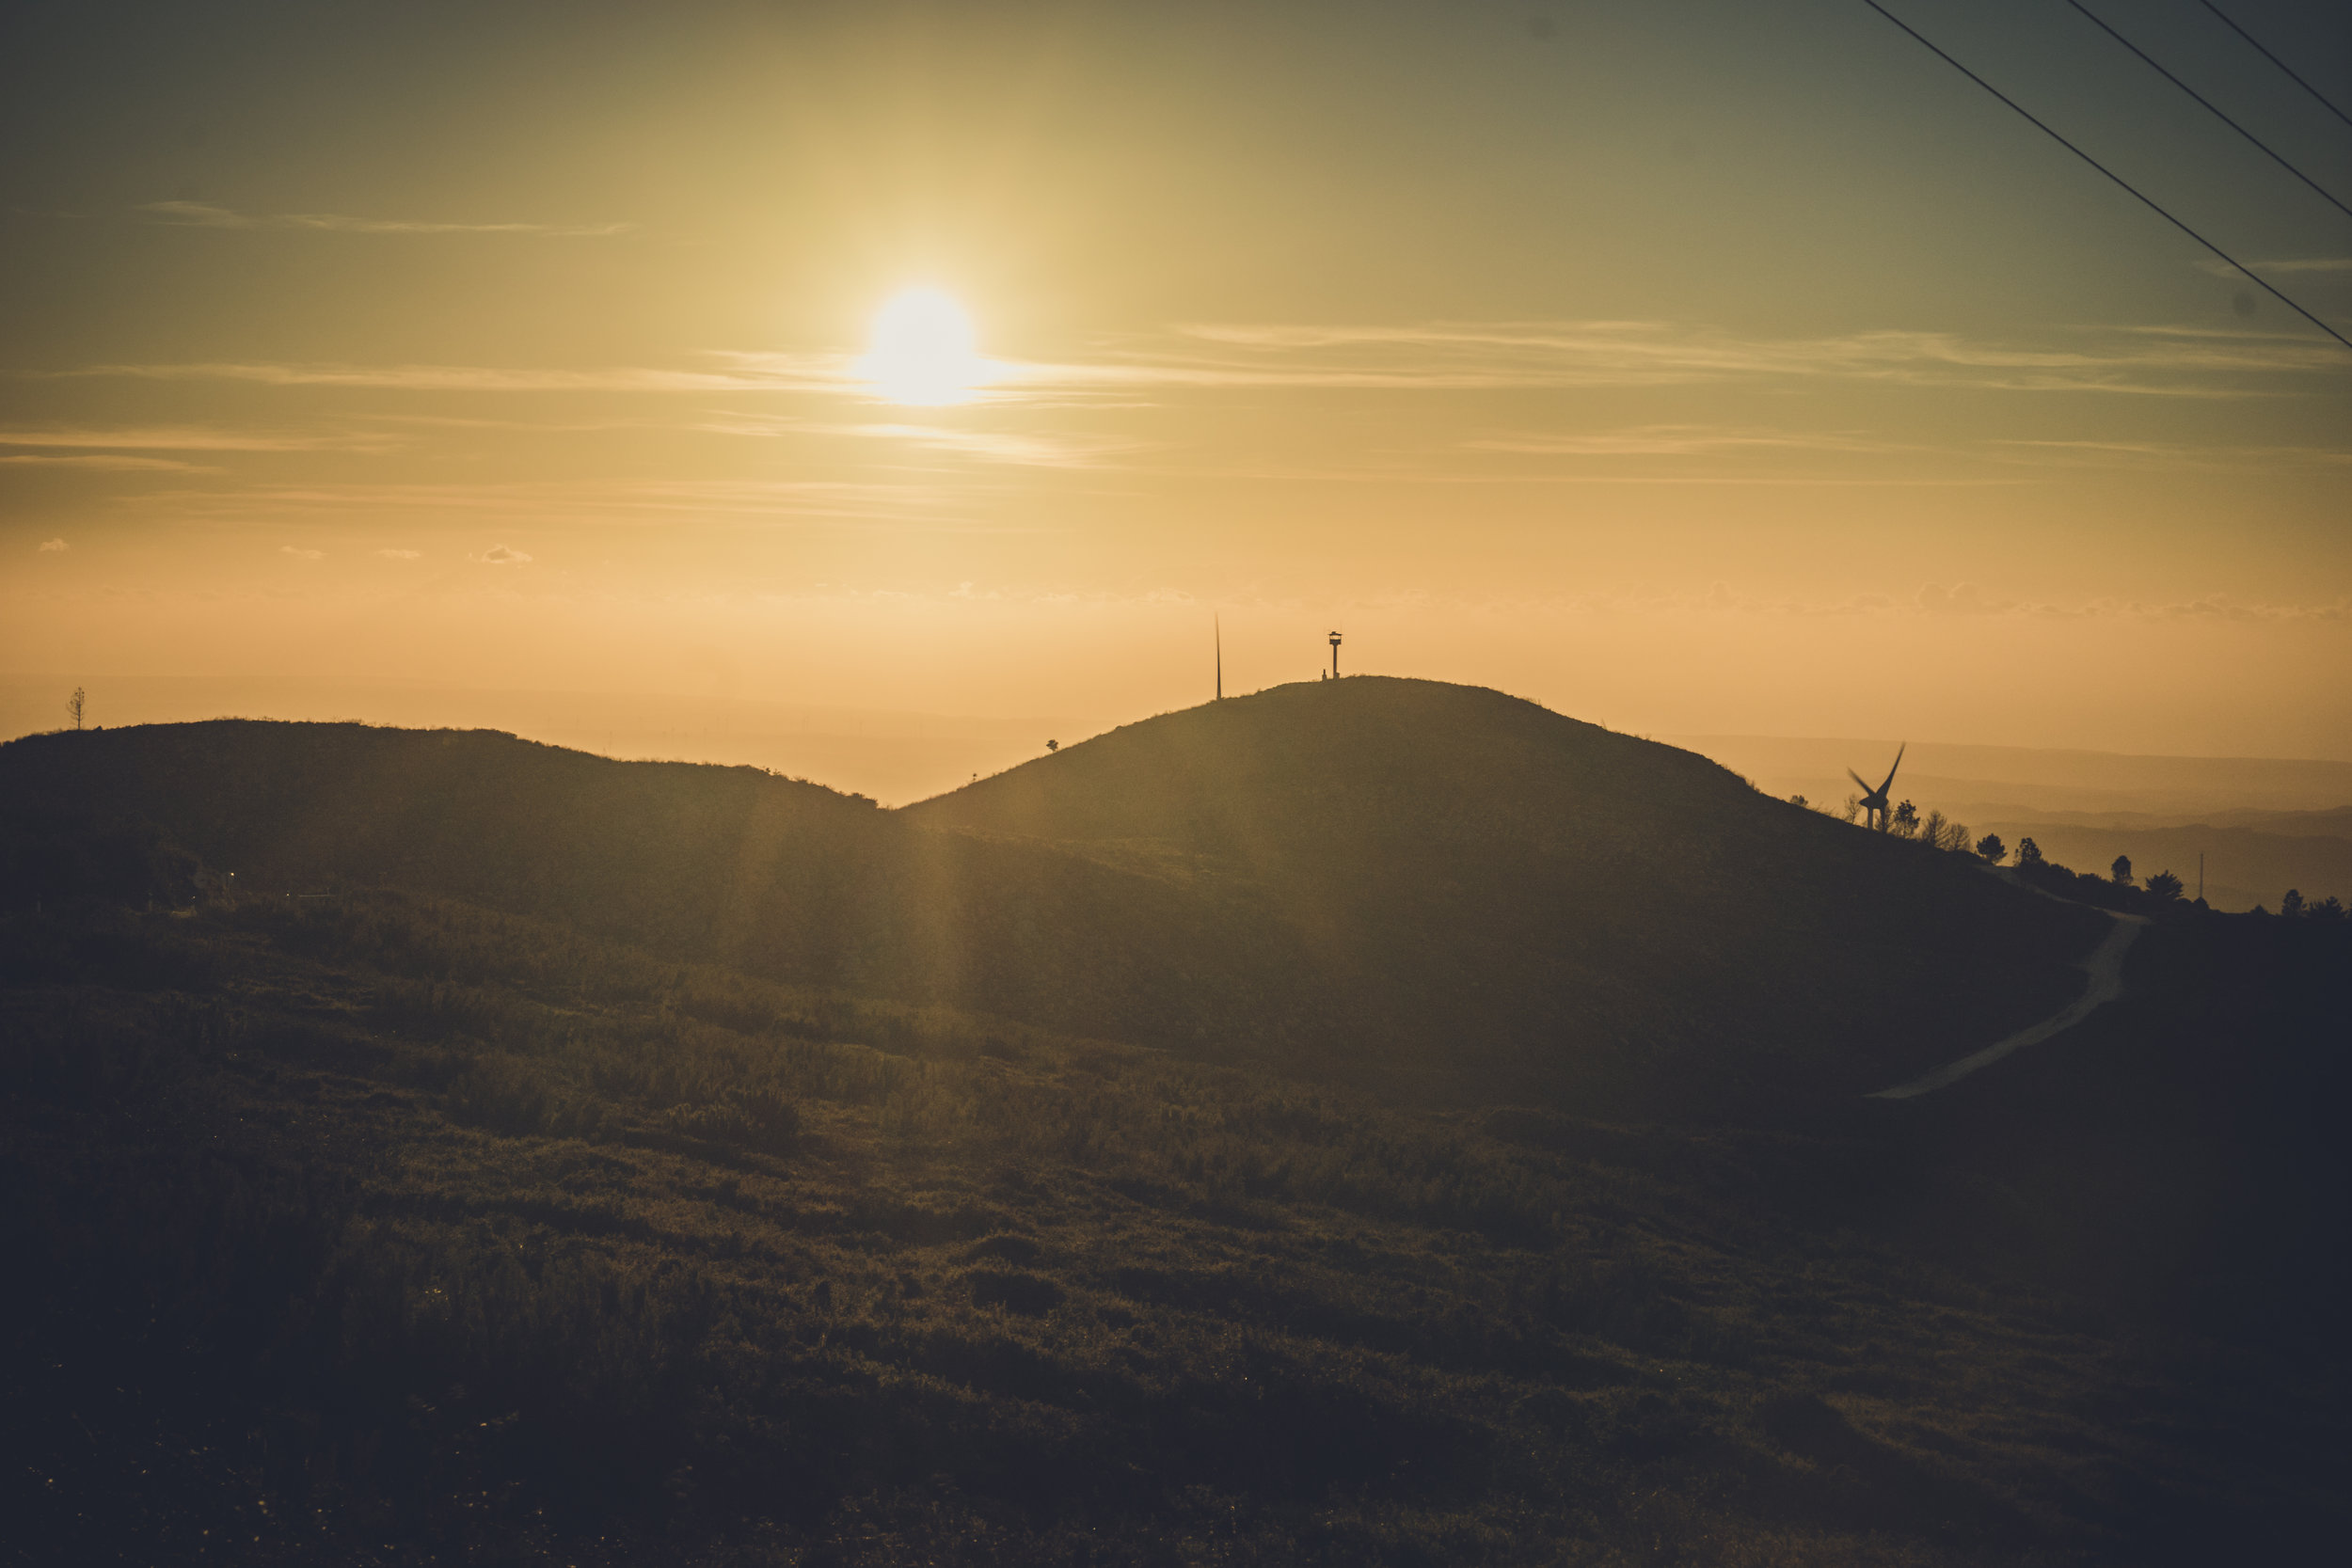 foia mountain monchique portugal. big mountain. highest in algave. great view. wind. golden light shining. sunsetting.jpg